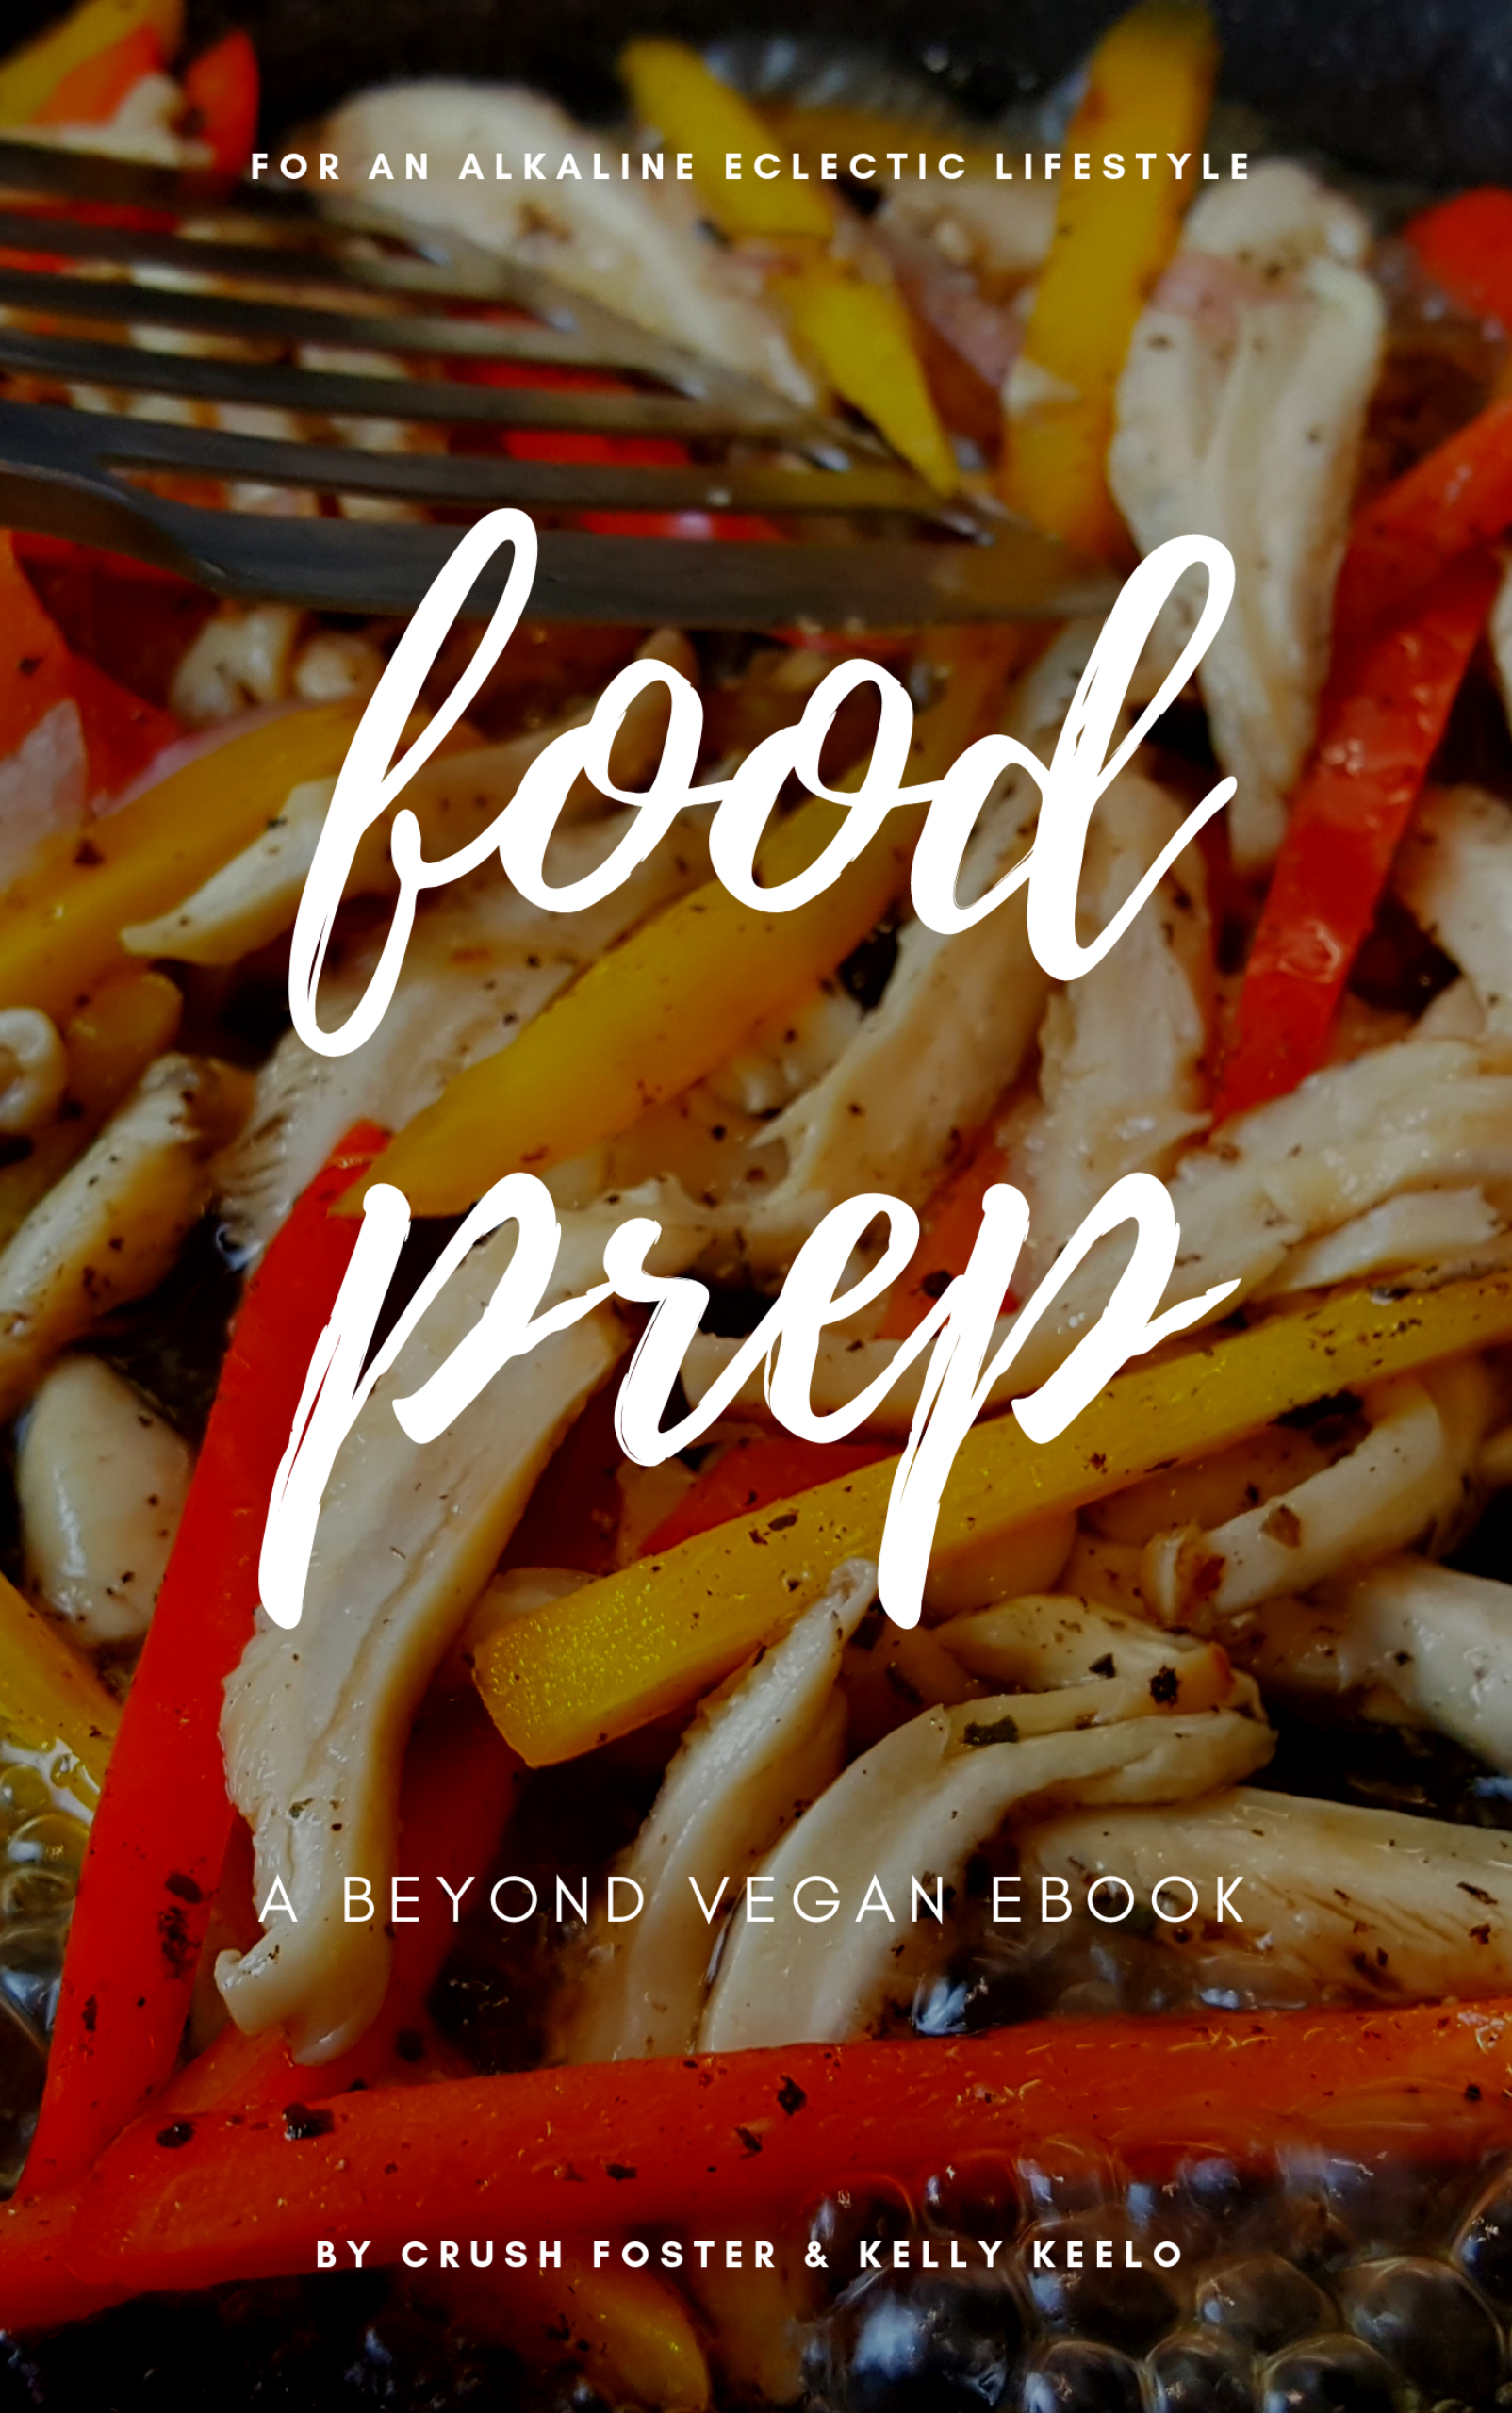 BEYOND VEGAN FOOD PREP EBOOK + FREE VIDEO